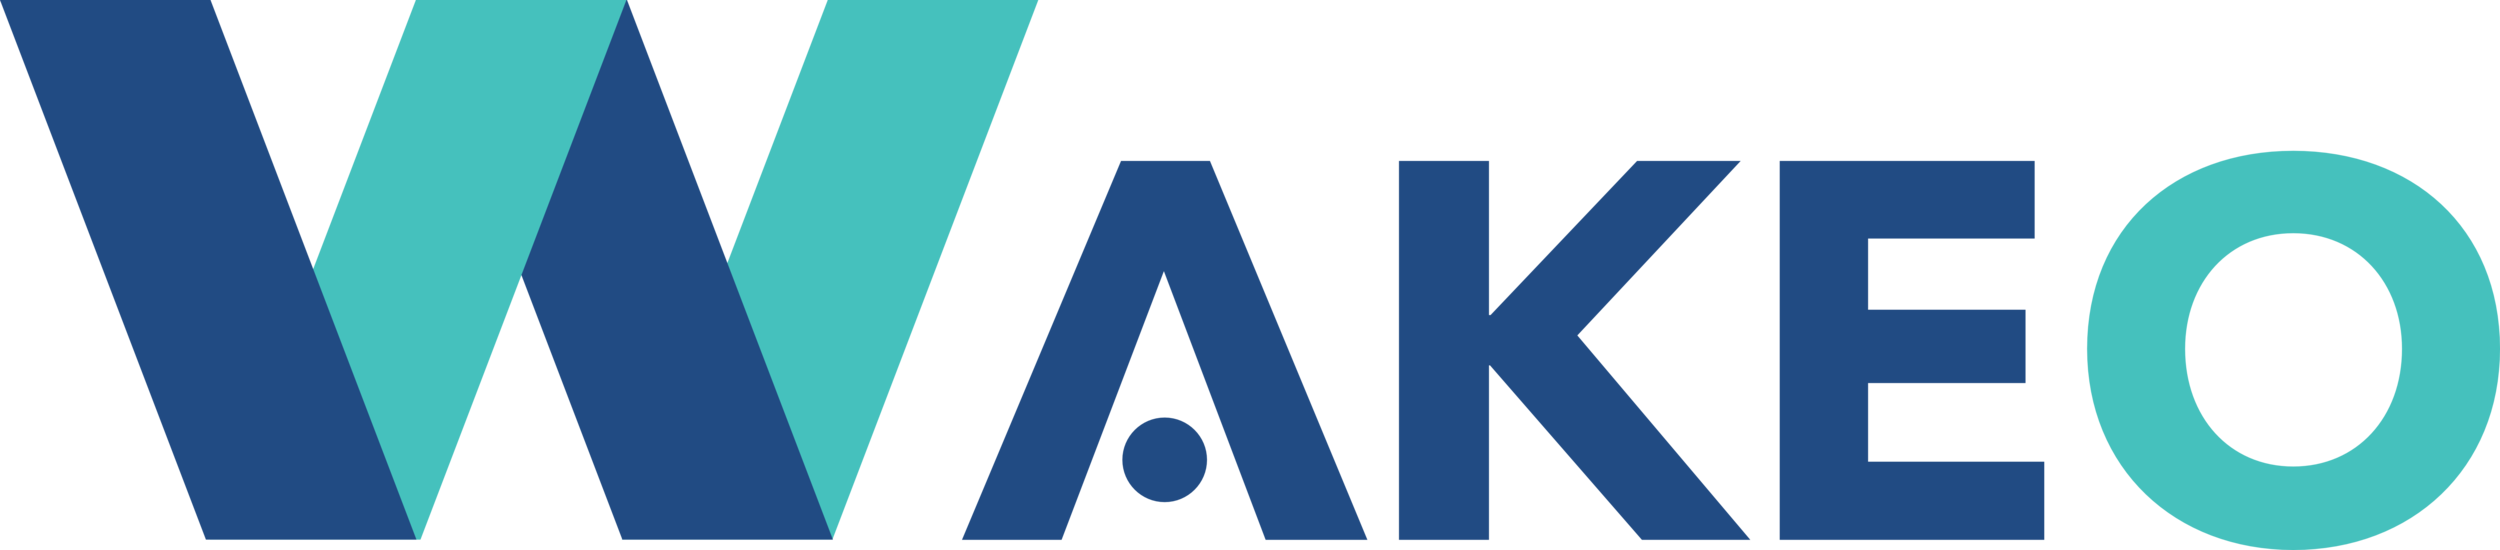 wakeo_logo_blue_high_quality.png